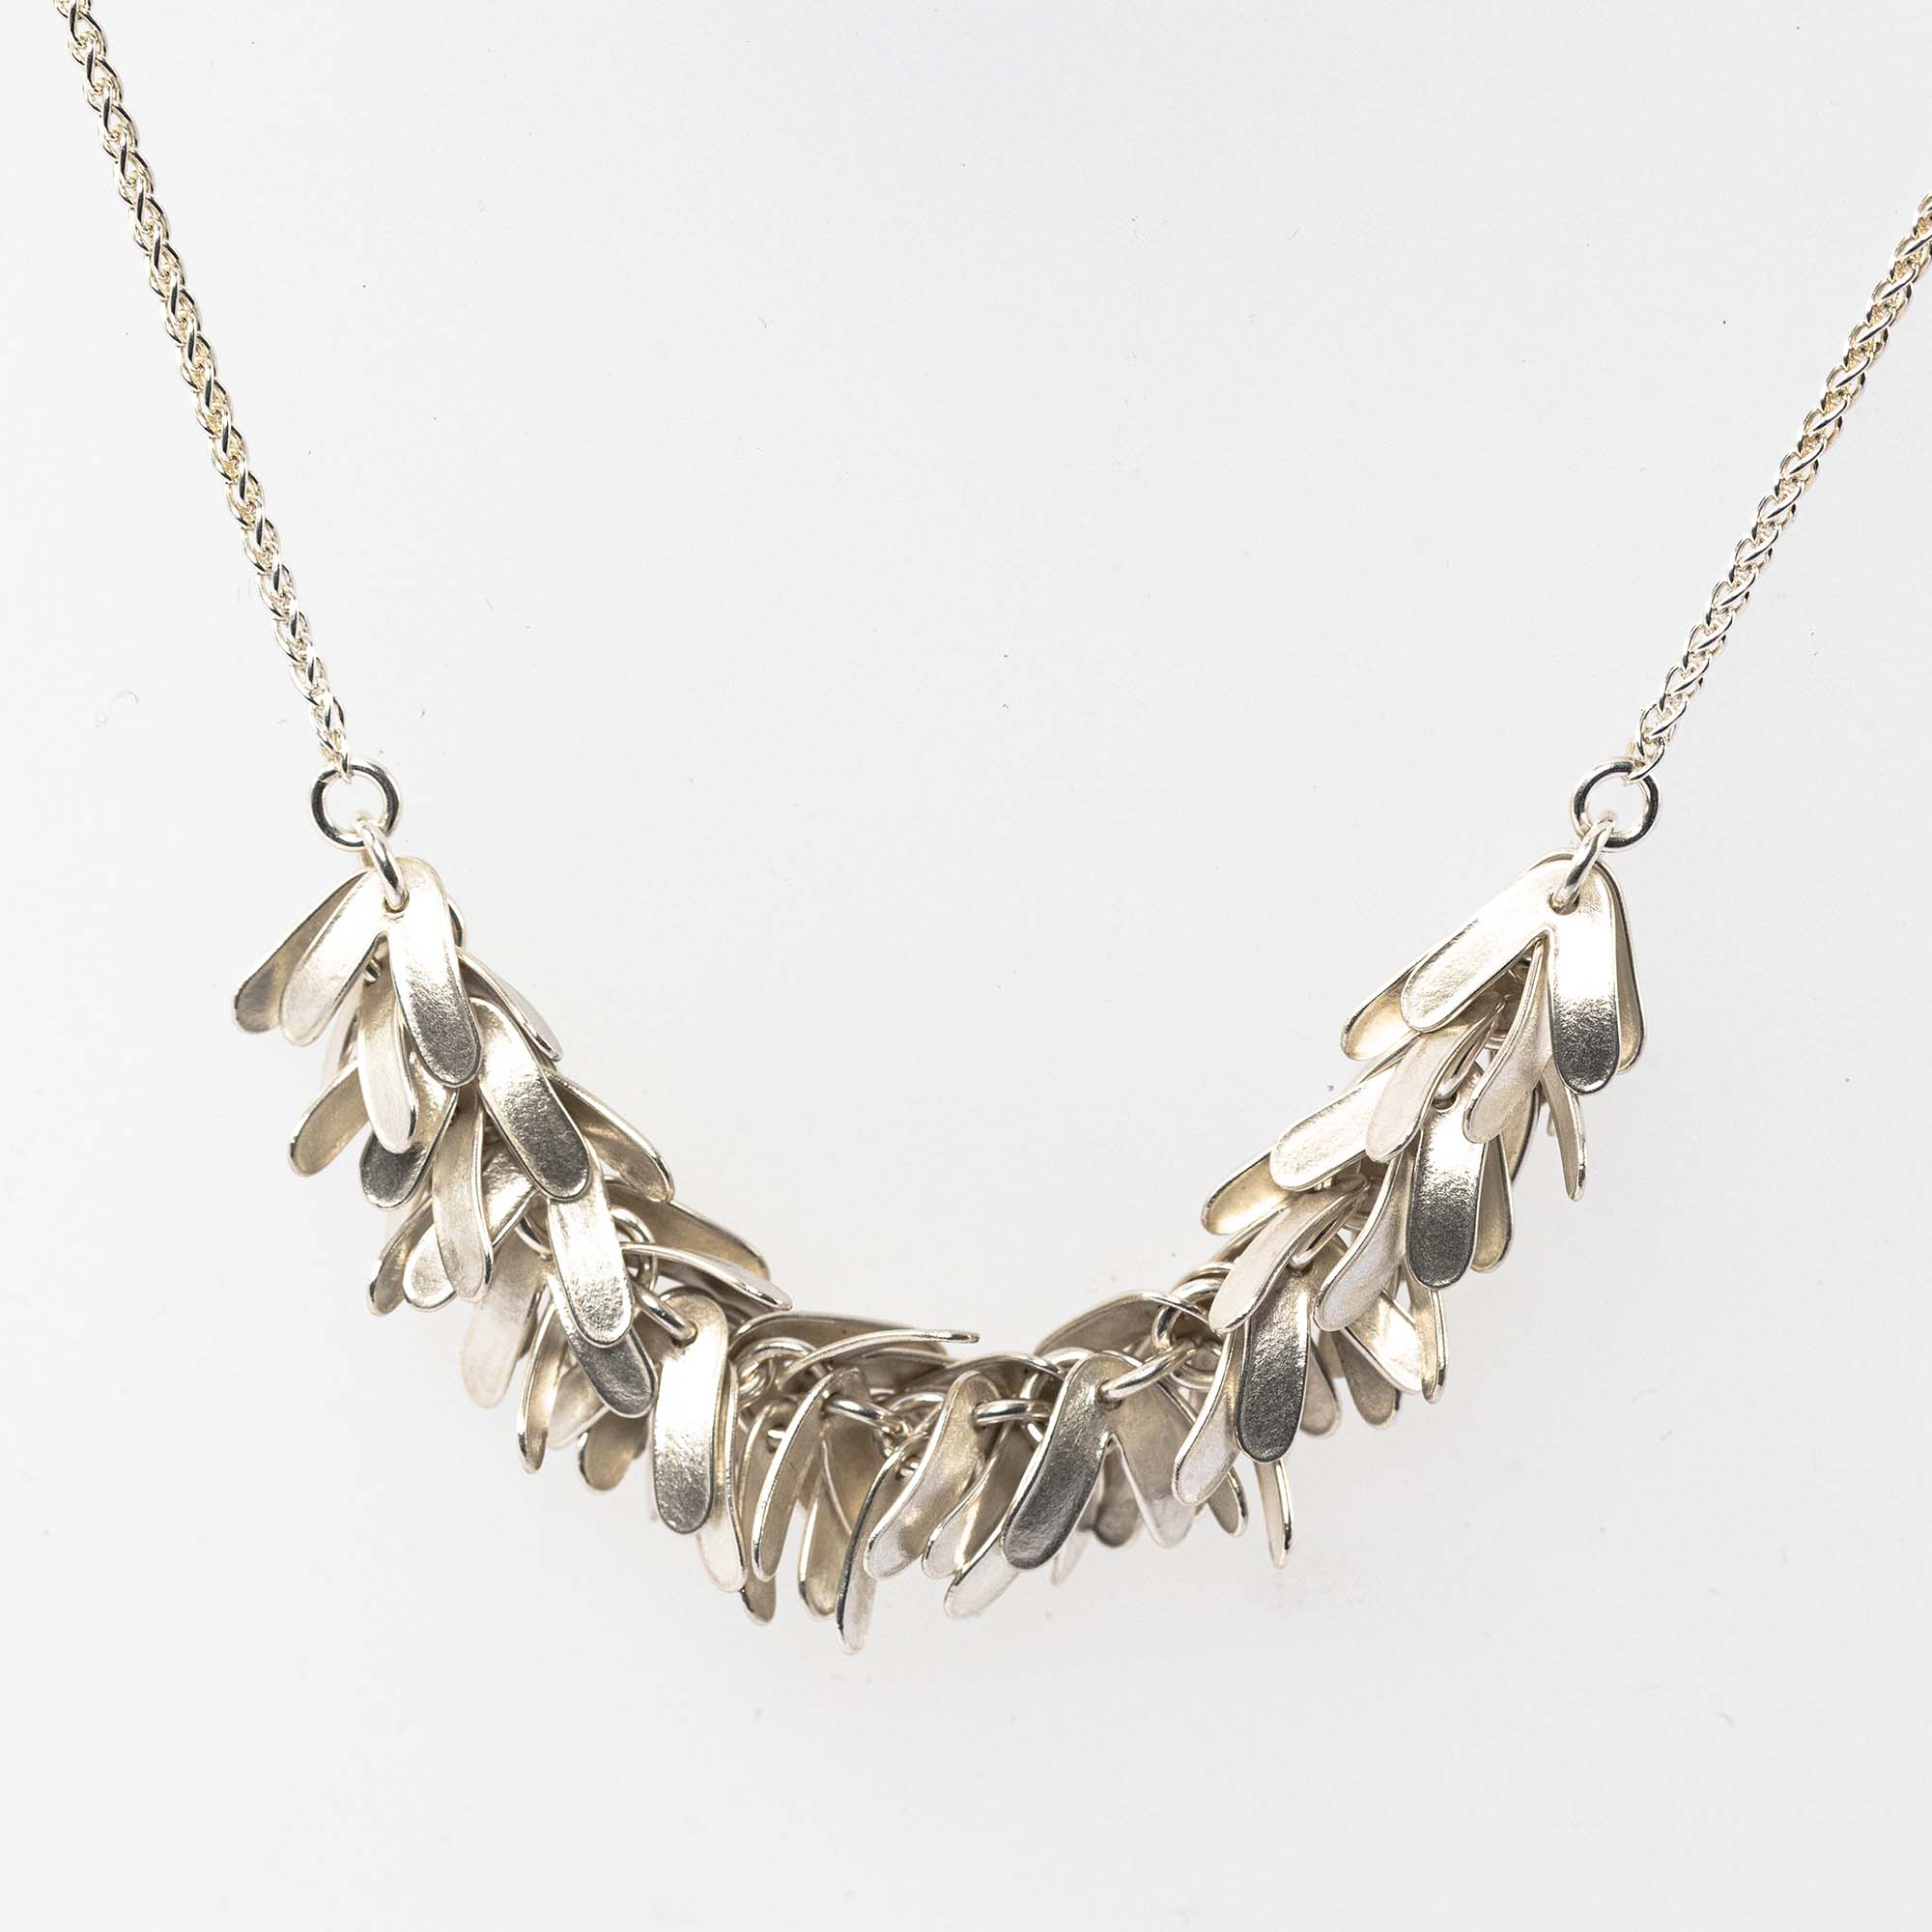 Glenn Campbell CAT-05 Catkin Necklace with Chain & T-bar links £260